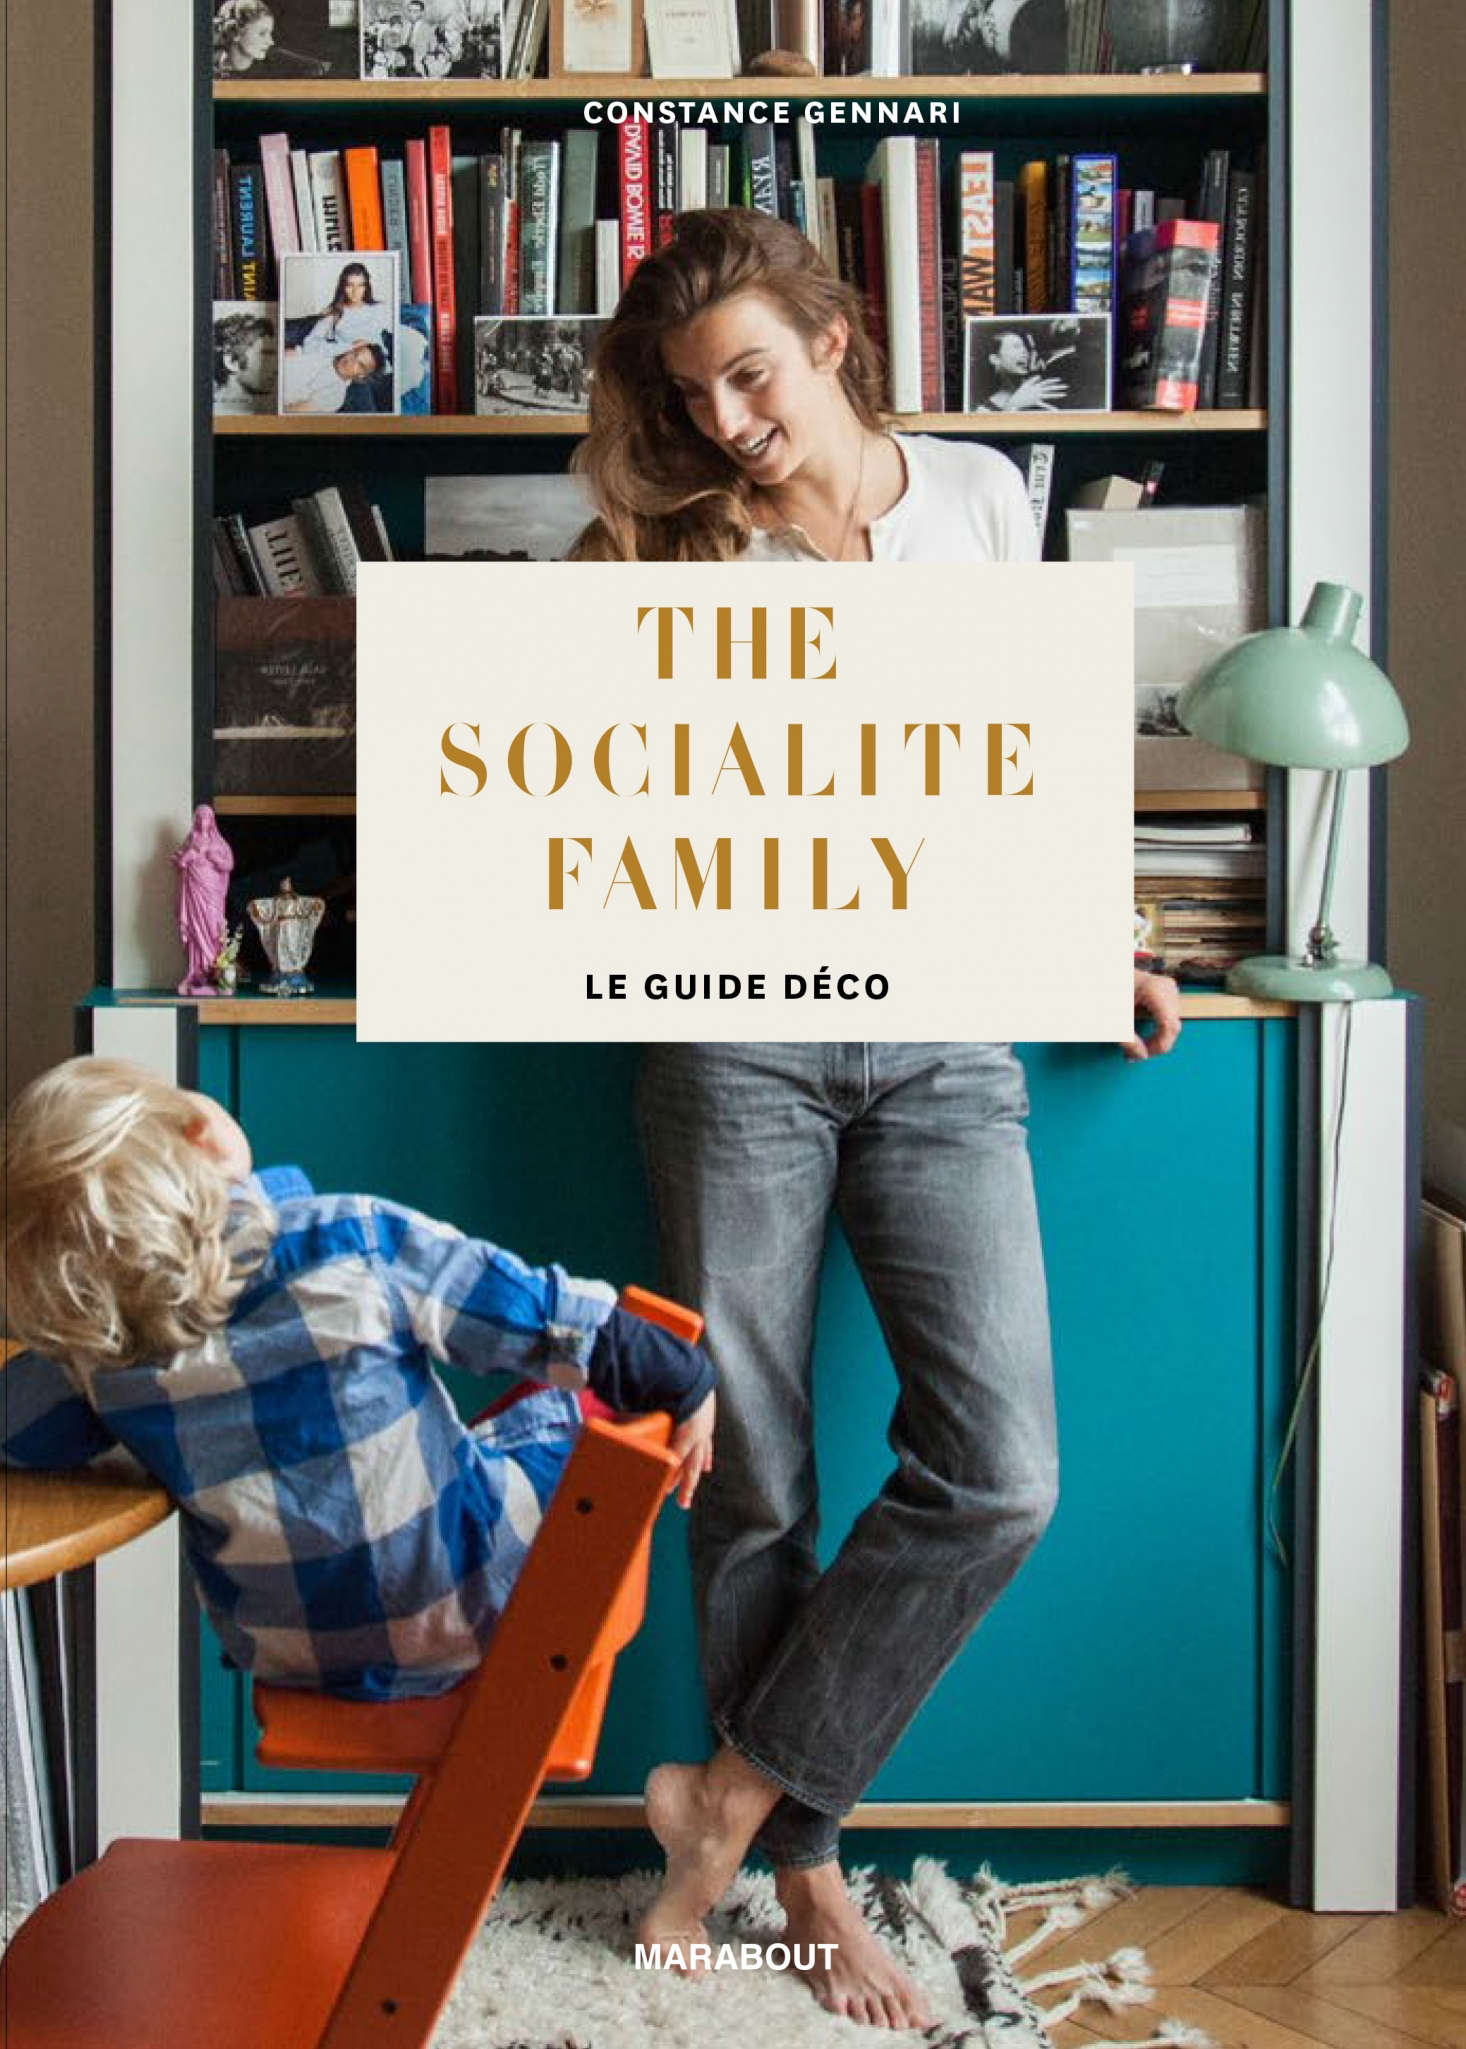 The Socialite Familyis published by Marabout Edition, a division of Hachette Livre. It&#8